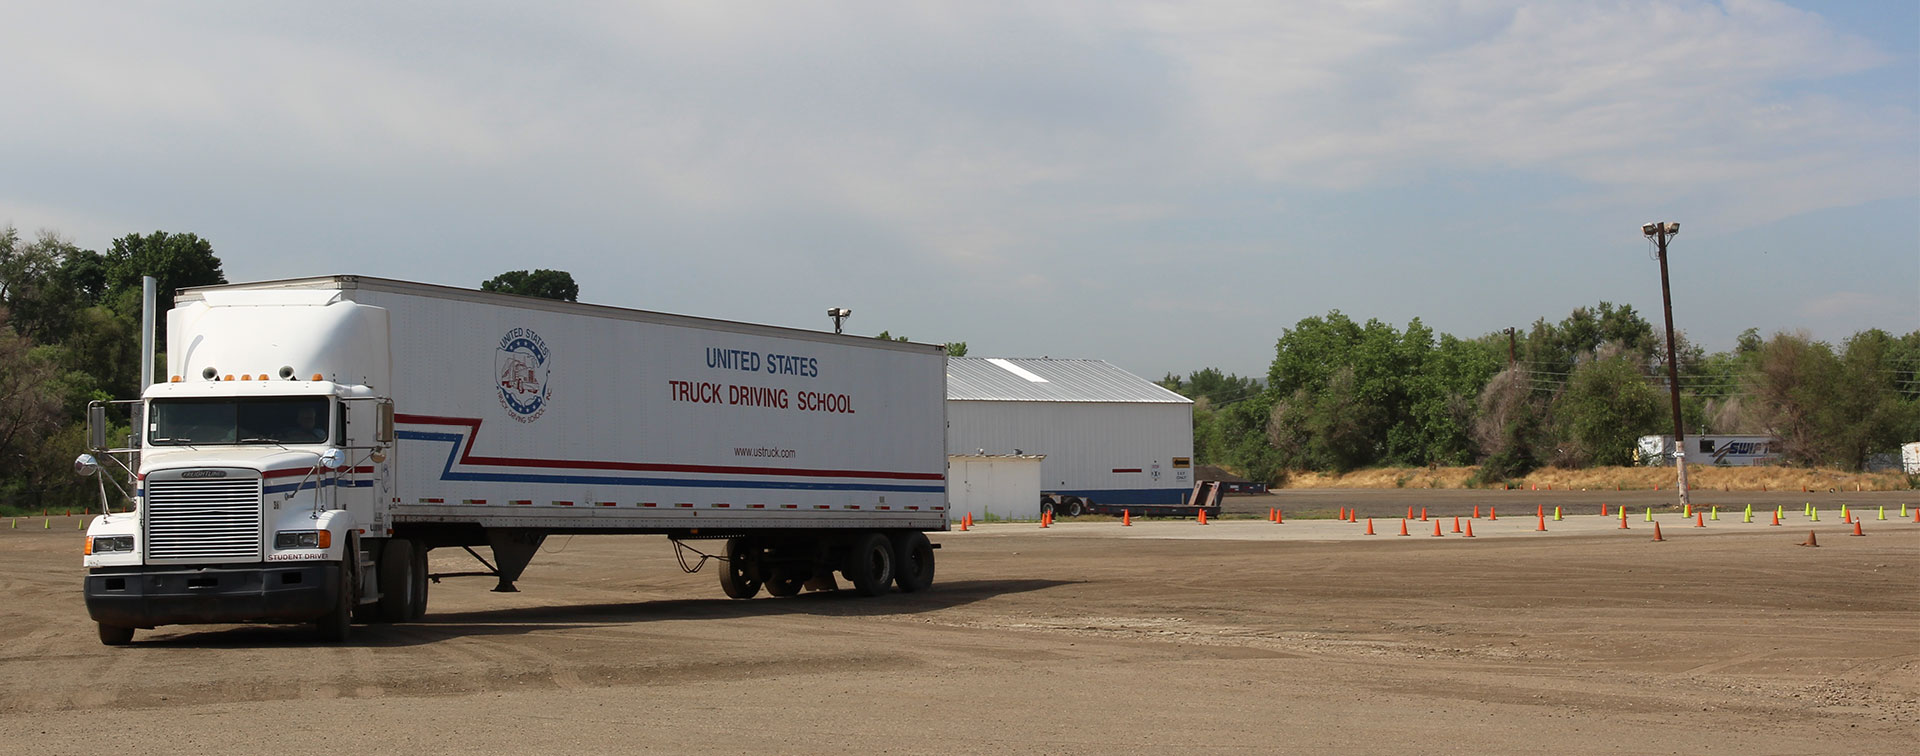 Welcome To United States Truck Driving School